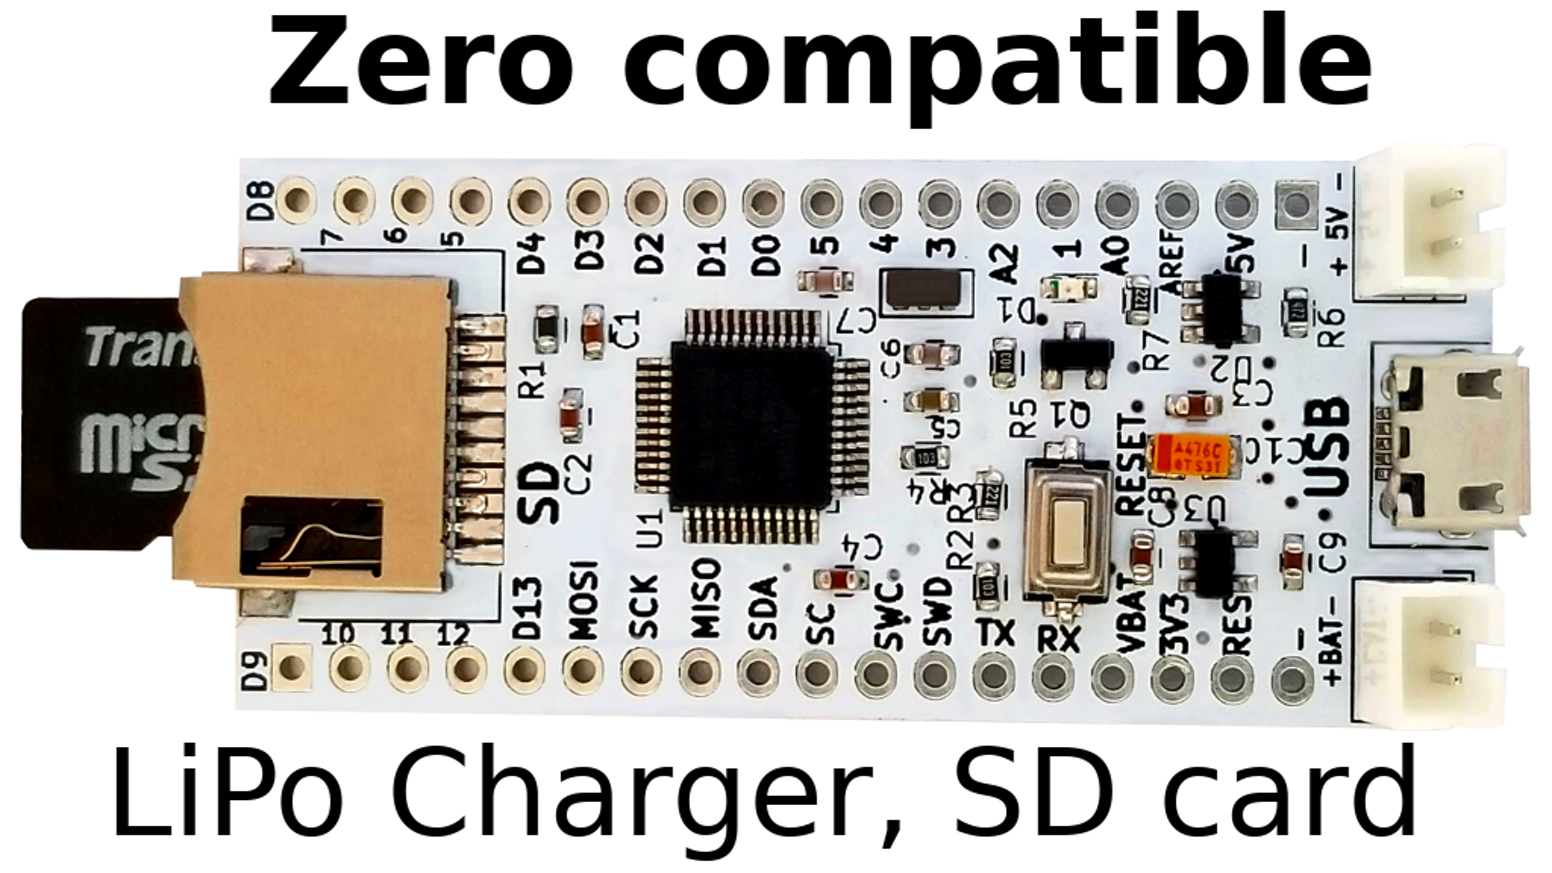 Zero BZ1, (Arduino-Compatible) with SD and LiPo charger  by Dimitri